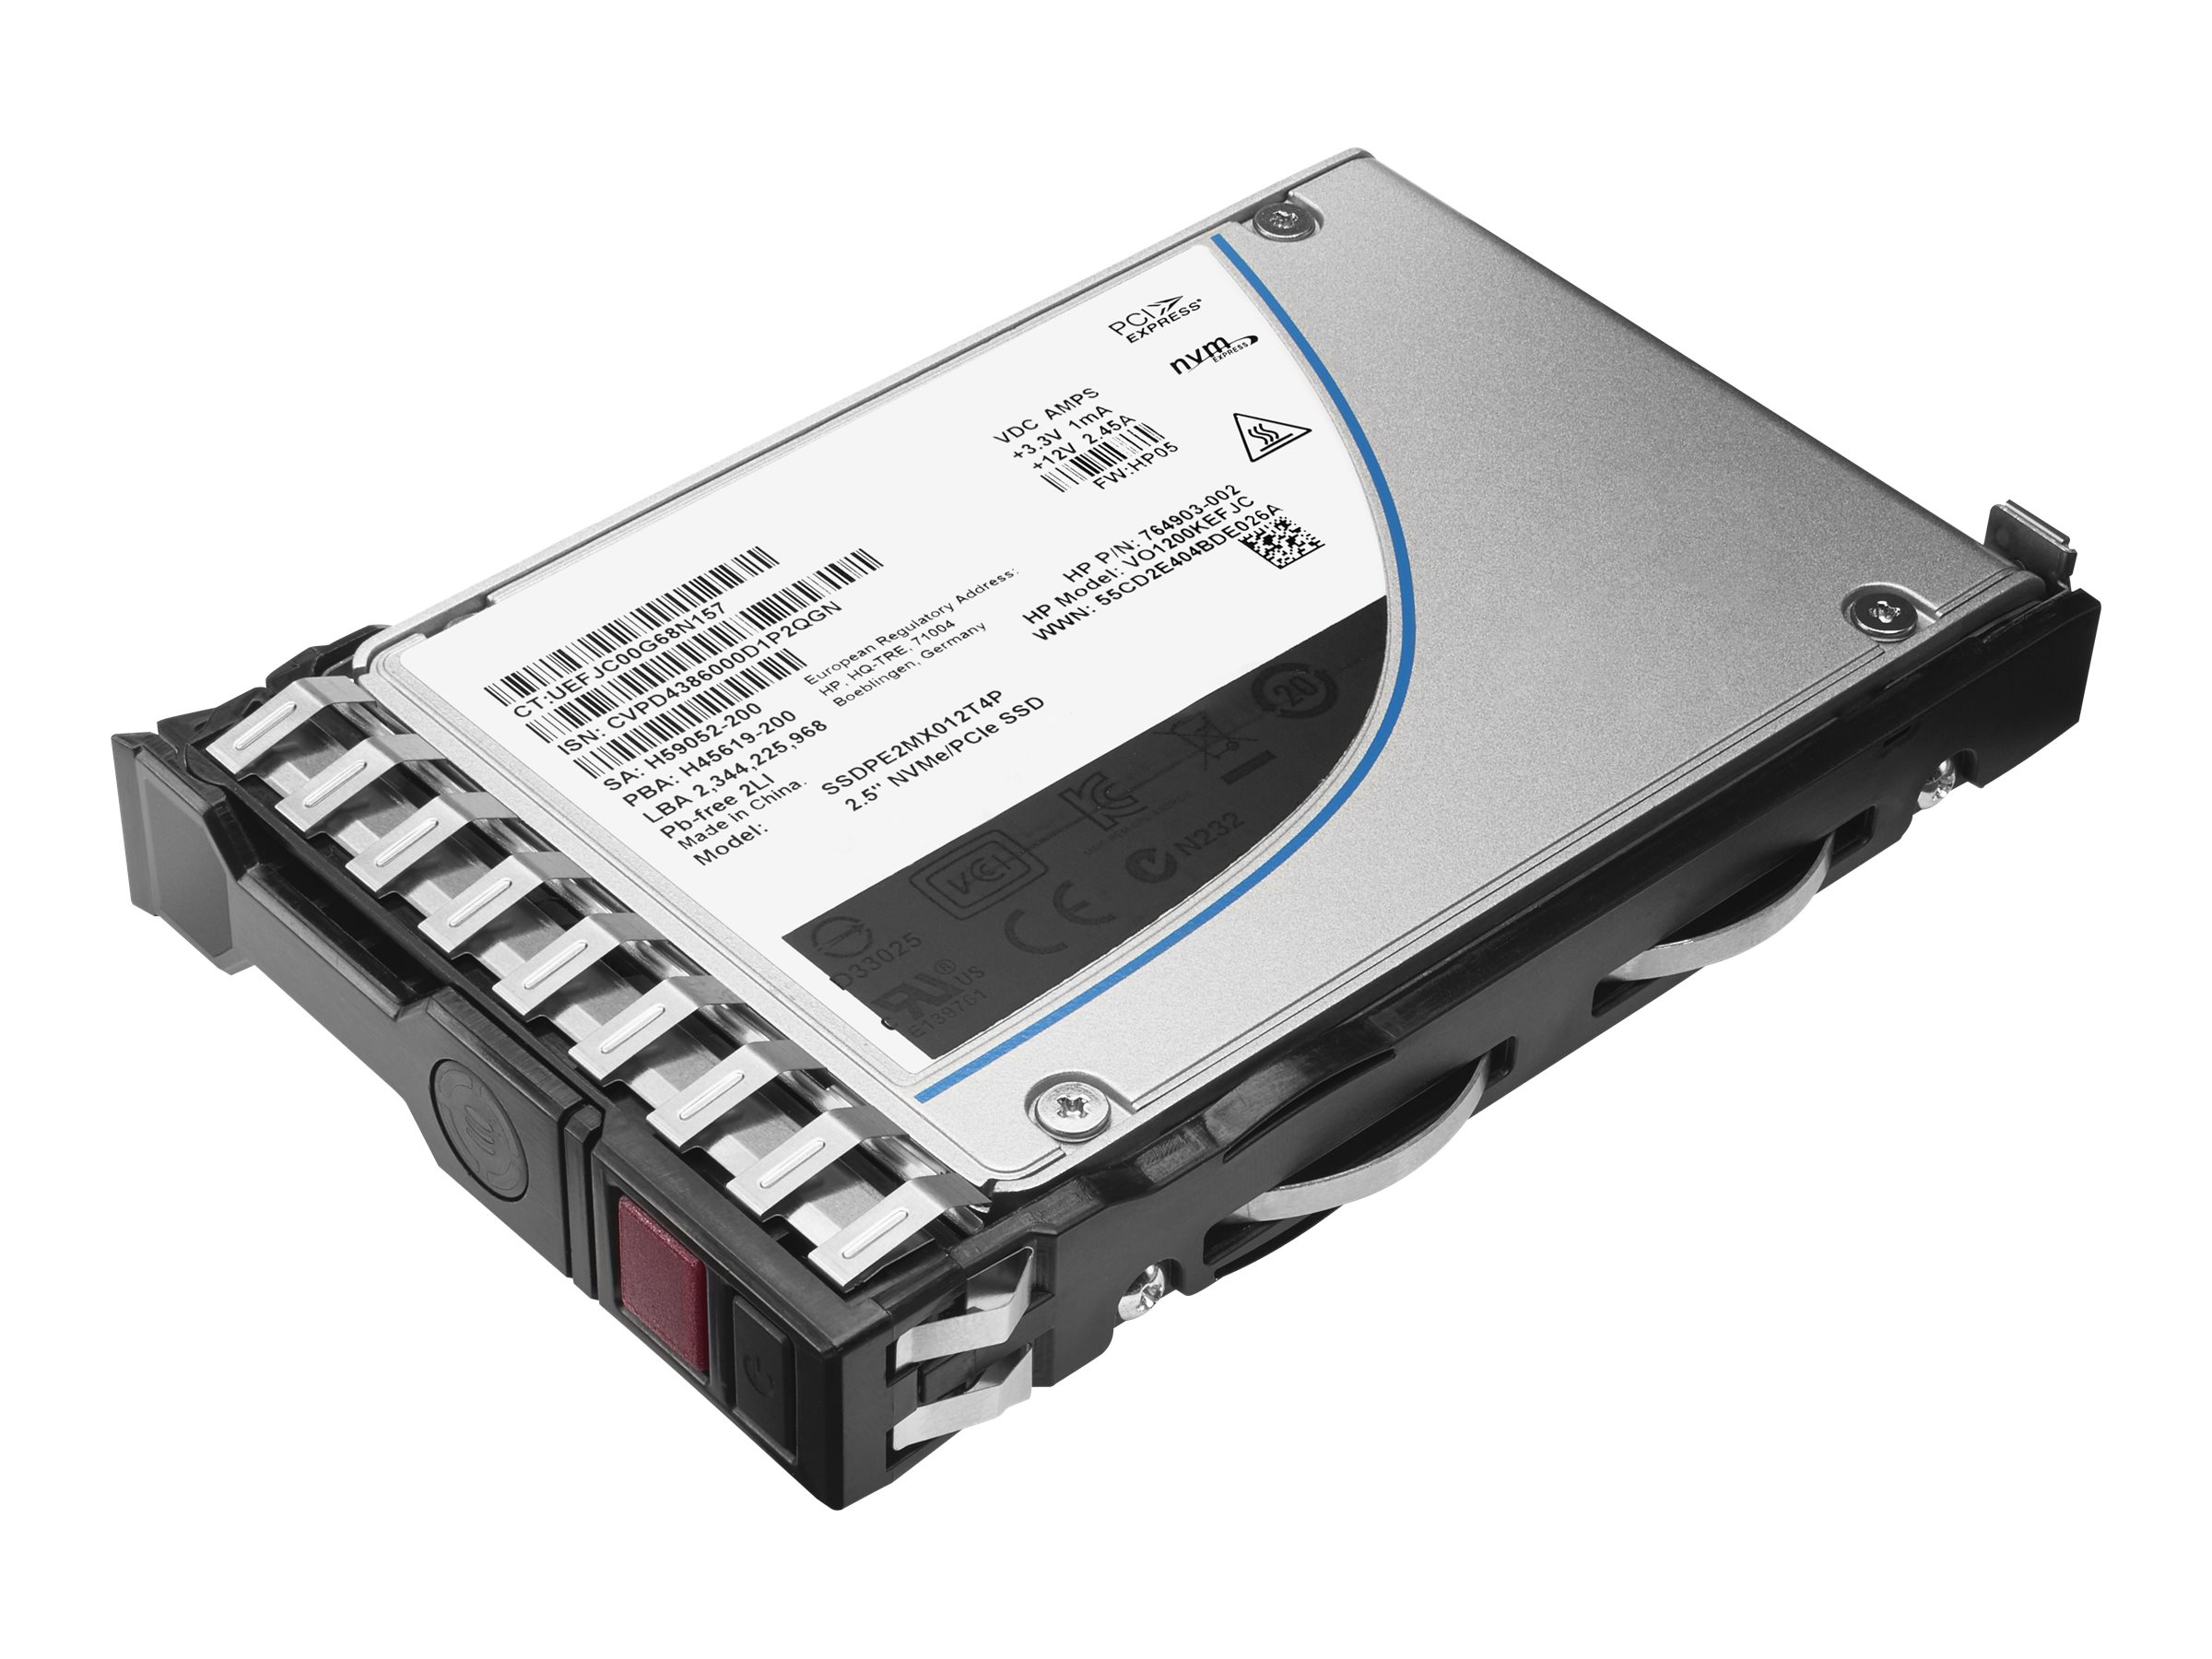 HPE 400GB SAS 12Gb s Write Intensive SFF 2.5 Hot Plug Solid State Drive, 802580-B21